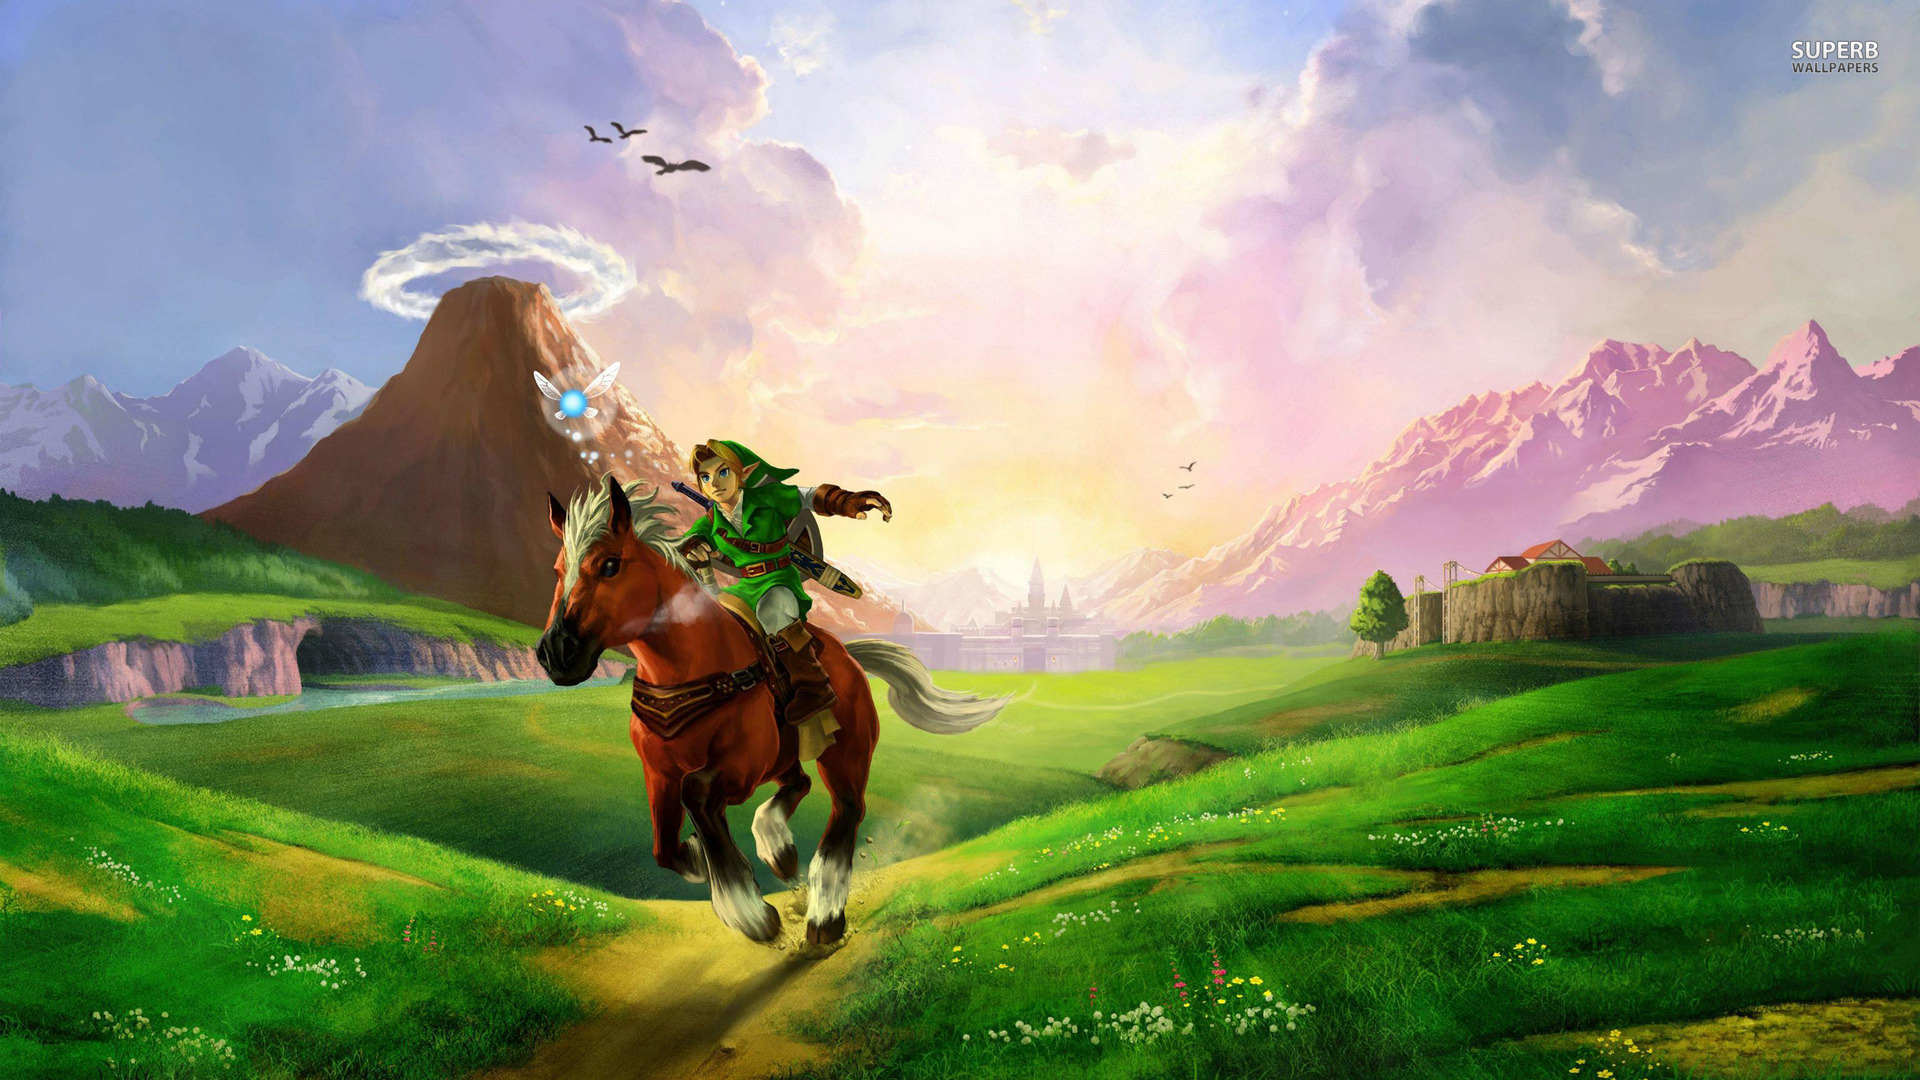 zelda wallpaper 1920x1080the legend of zelda ocarina of time wallpaper 1920x1080